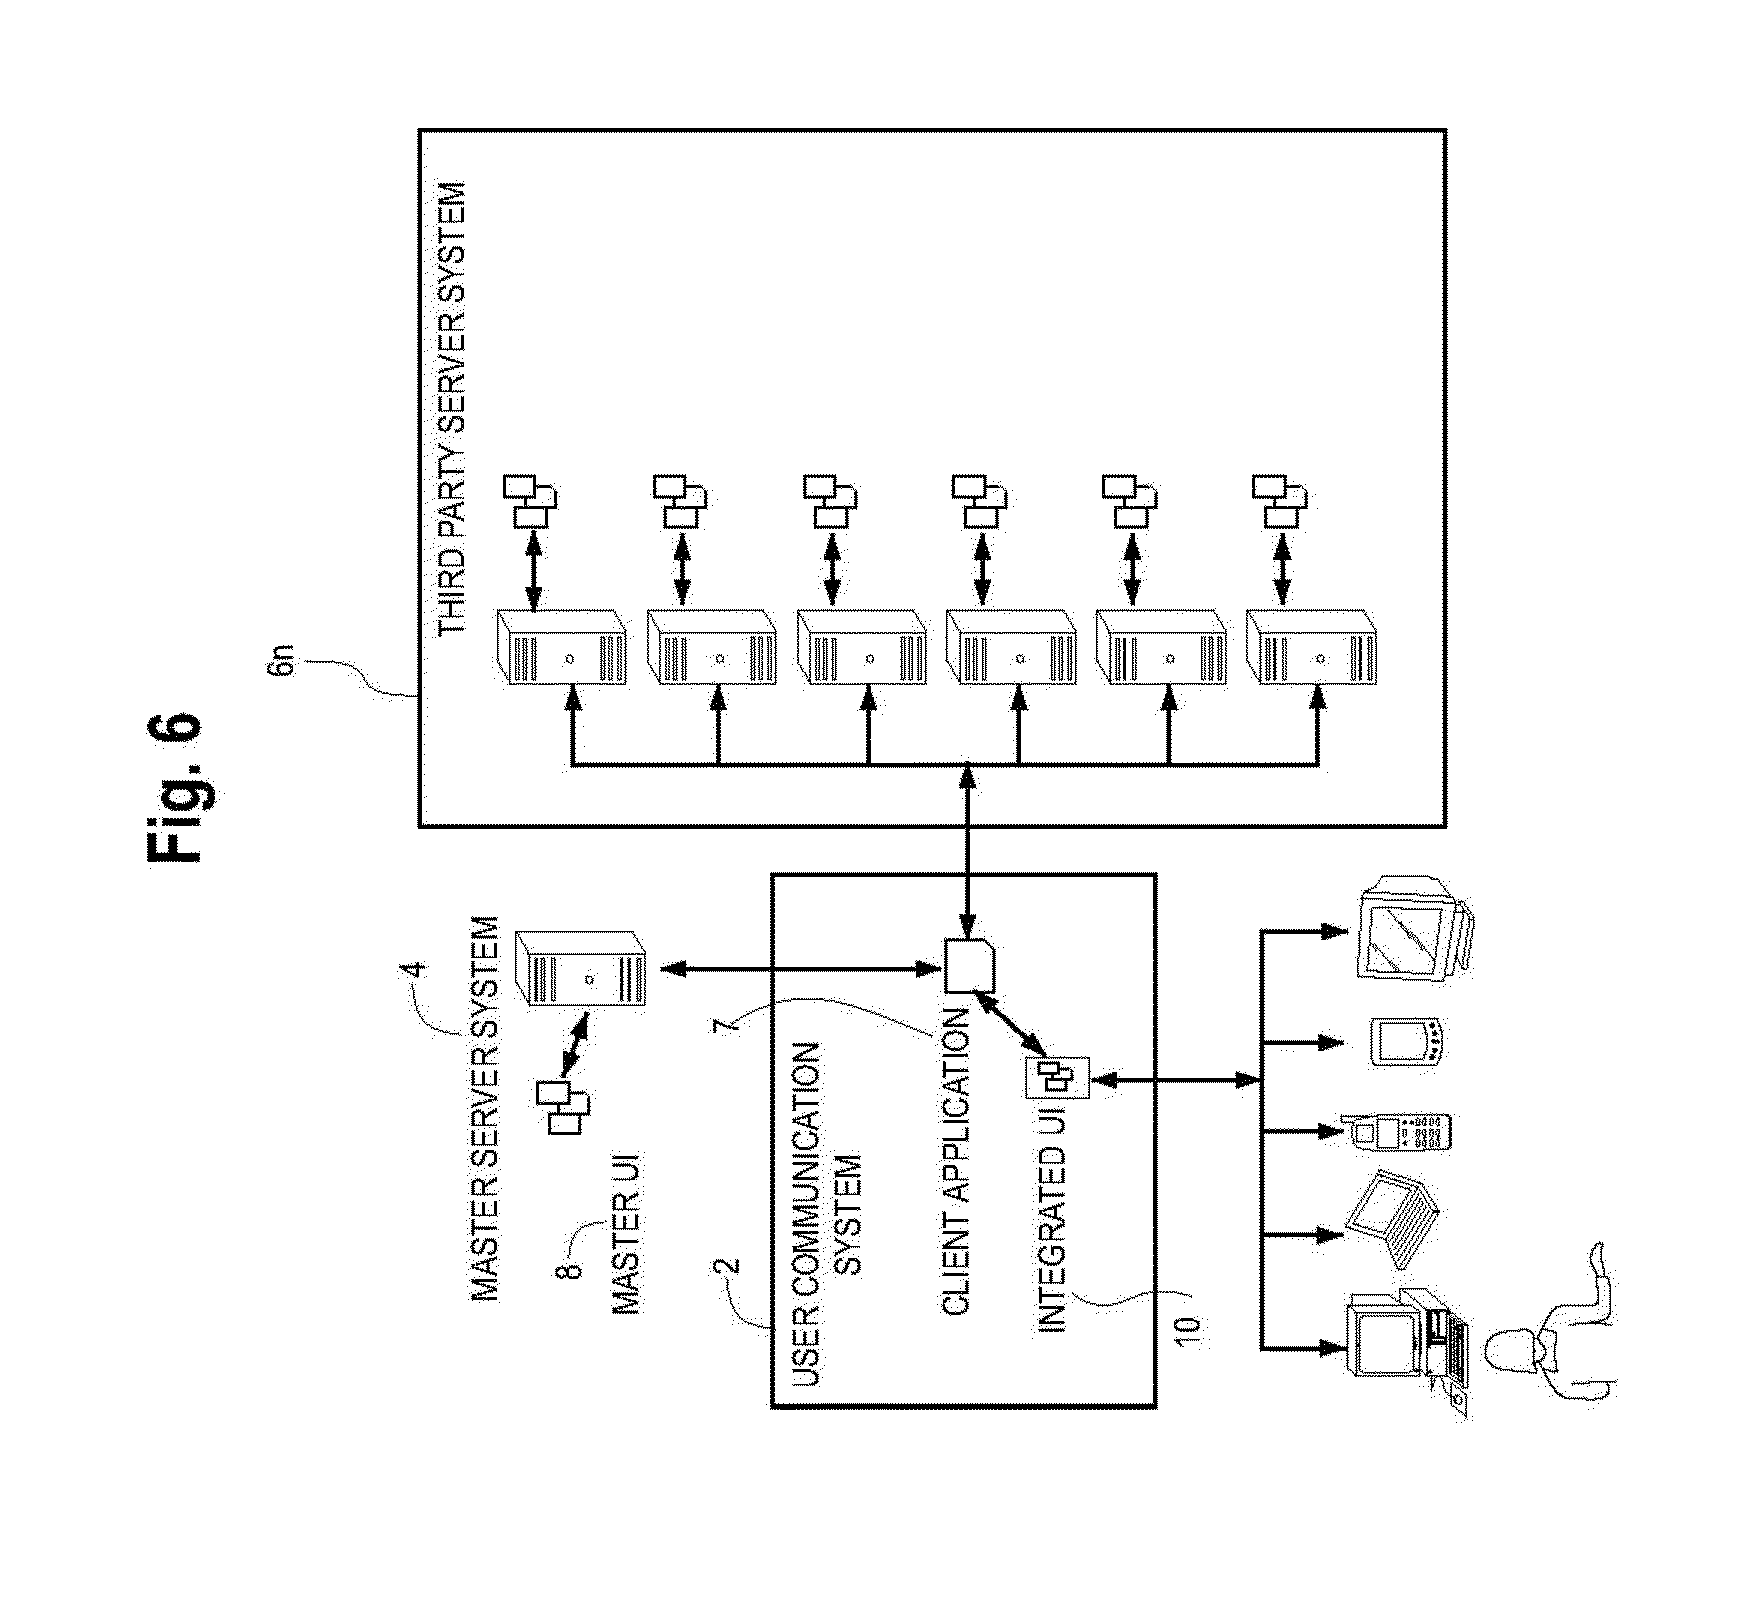 Patent Us 8959156 B2 Wifi Radio User Interface Circuit Schematic Flickr Photo Sharing